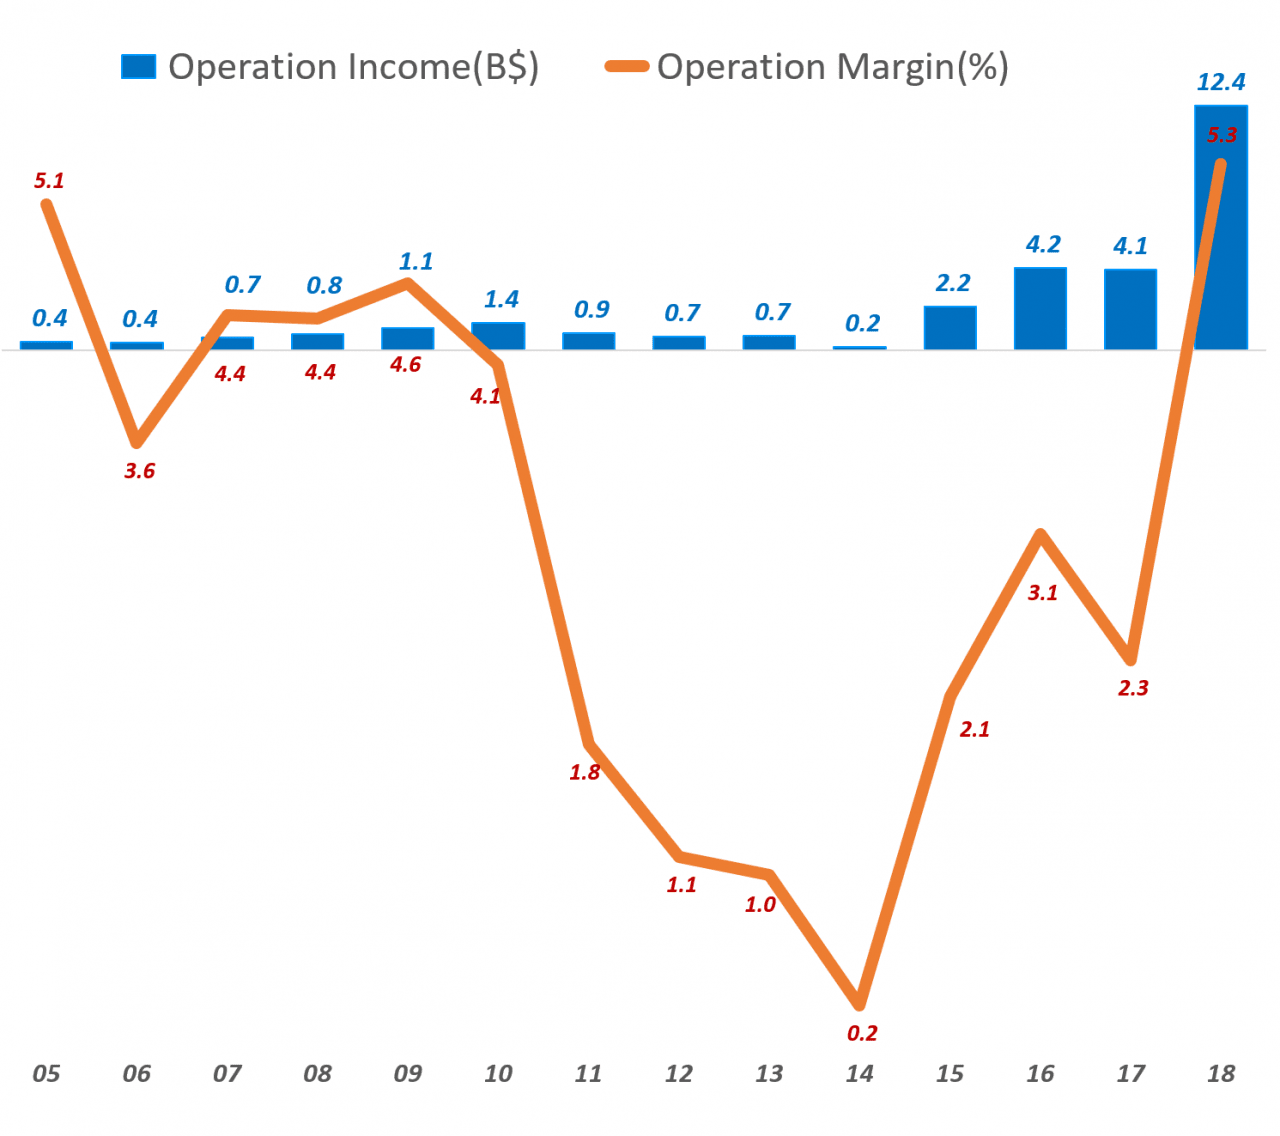 아마존 연도별 영업이익 추이(1995년 ~ 2018년), Amzon Operation Income trend, Data - Amazon, Graph Happist